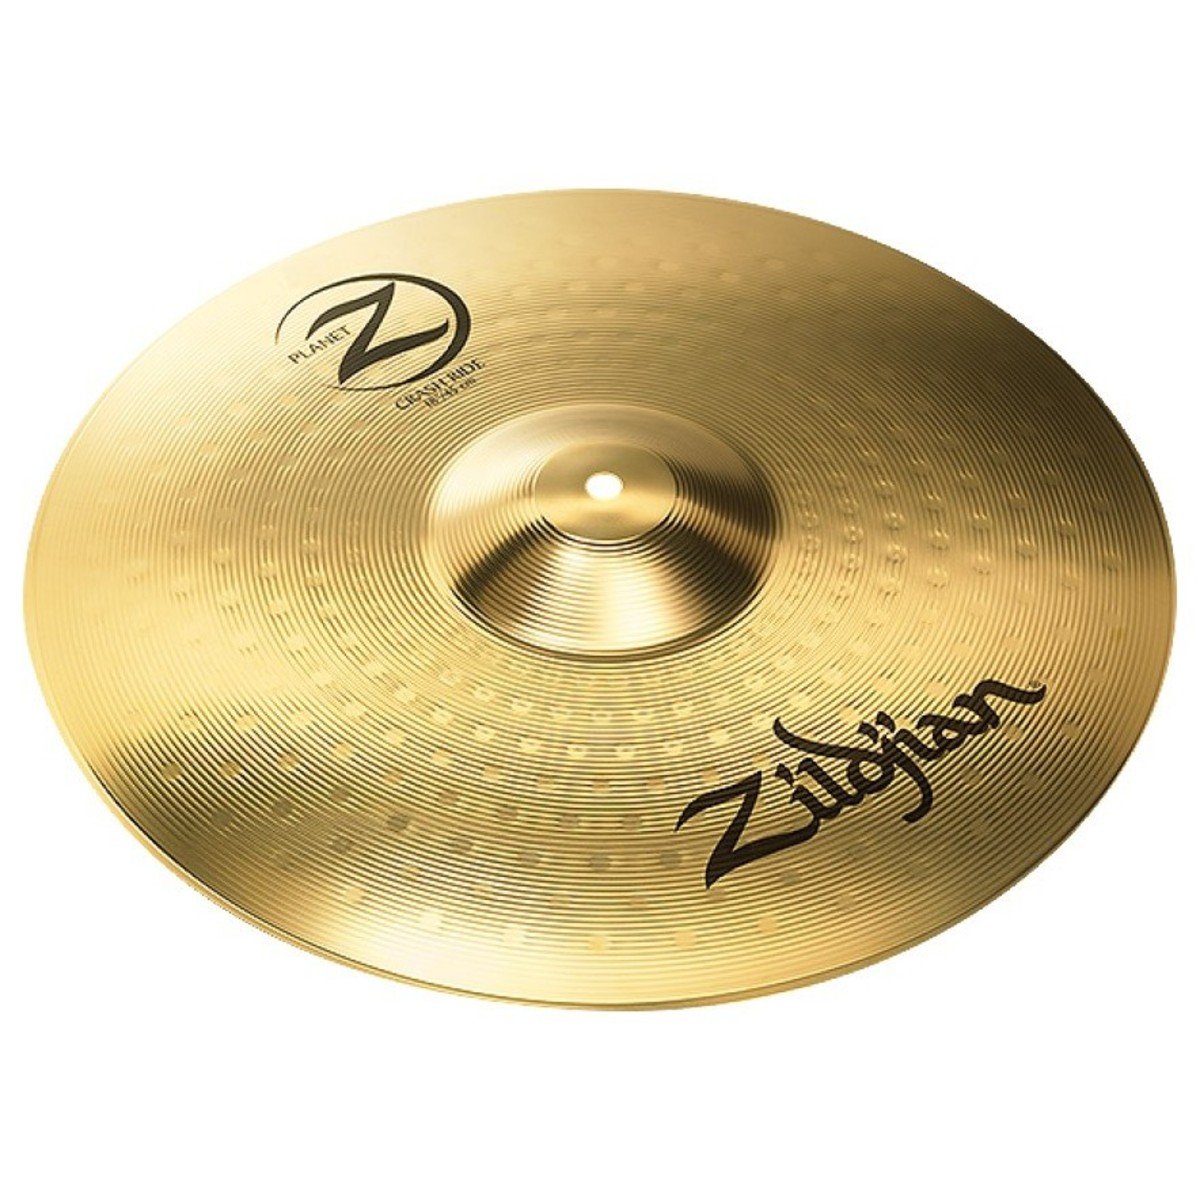 Dating zildjian cymbals in Sydney